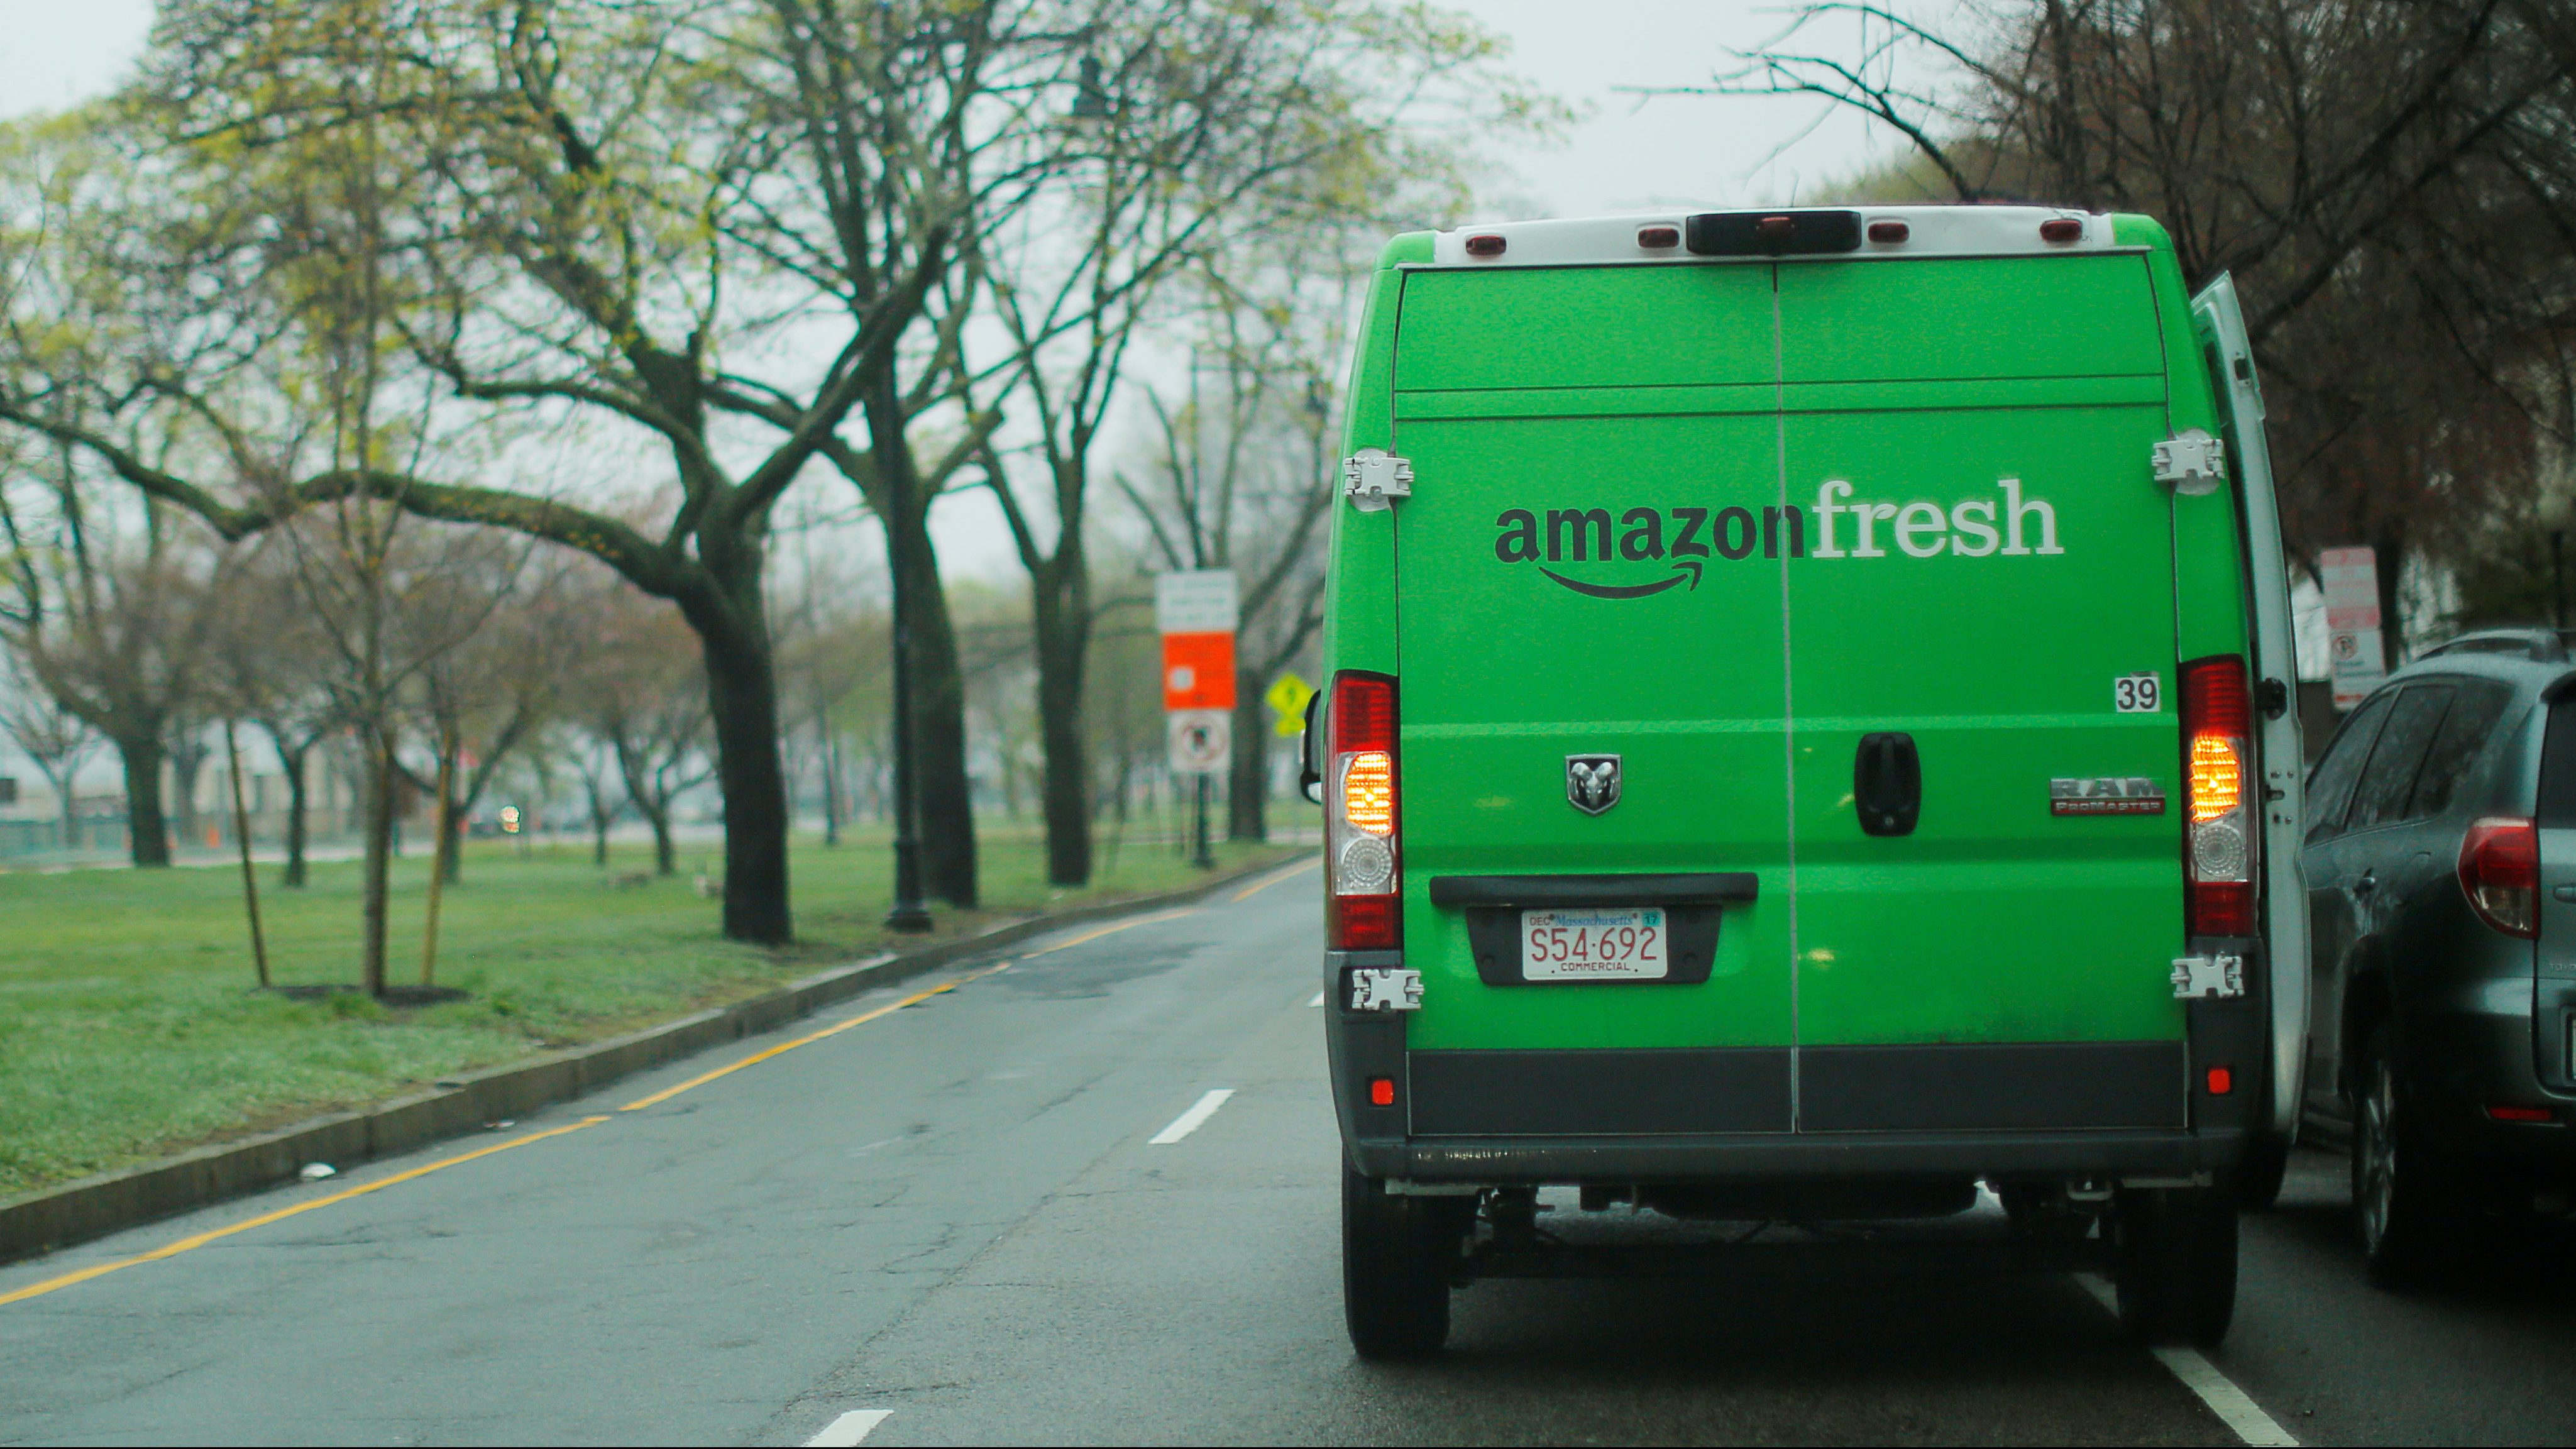 An Amazon Fresh truck makes a delivery in Cambridge, Massachusetts, U.S., April 26, 2017. REUTERS/Brian Snyder - RTS140Y8